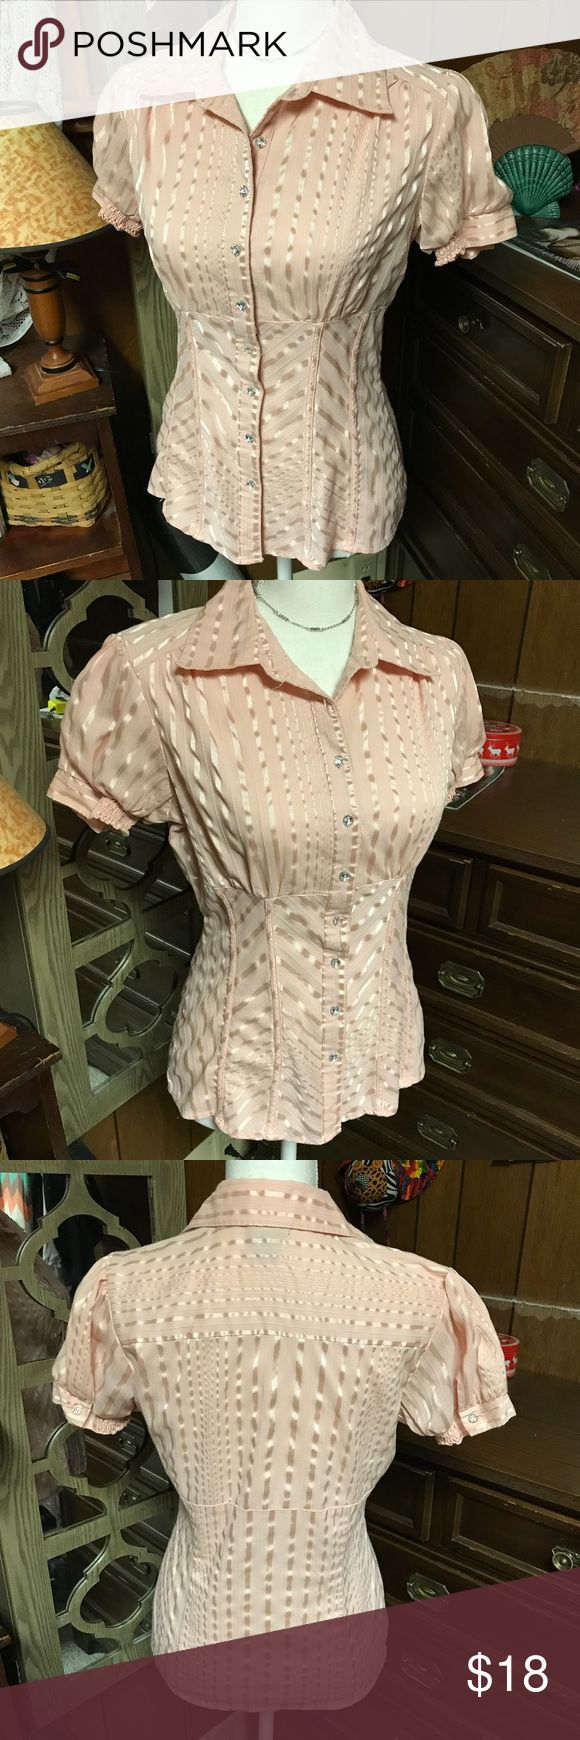 Dots size small light pink short sleeve shirt Dots size small short sleeve dress shirt size small💕 this is as one of my fav's at my office job✨ perfect spring 🌷 color❣️✨ Tops Button Down Shirts